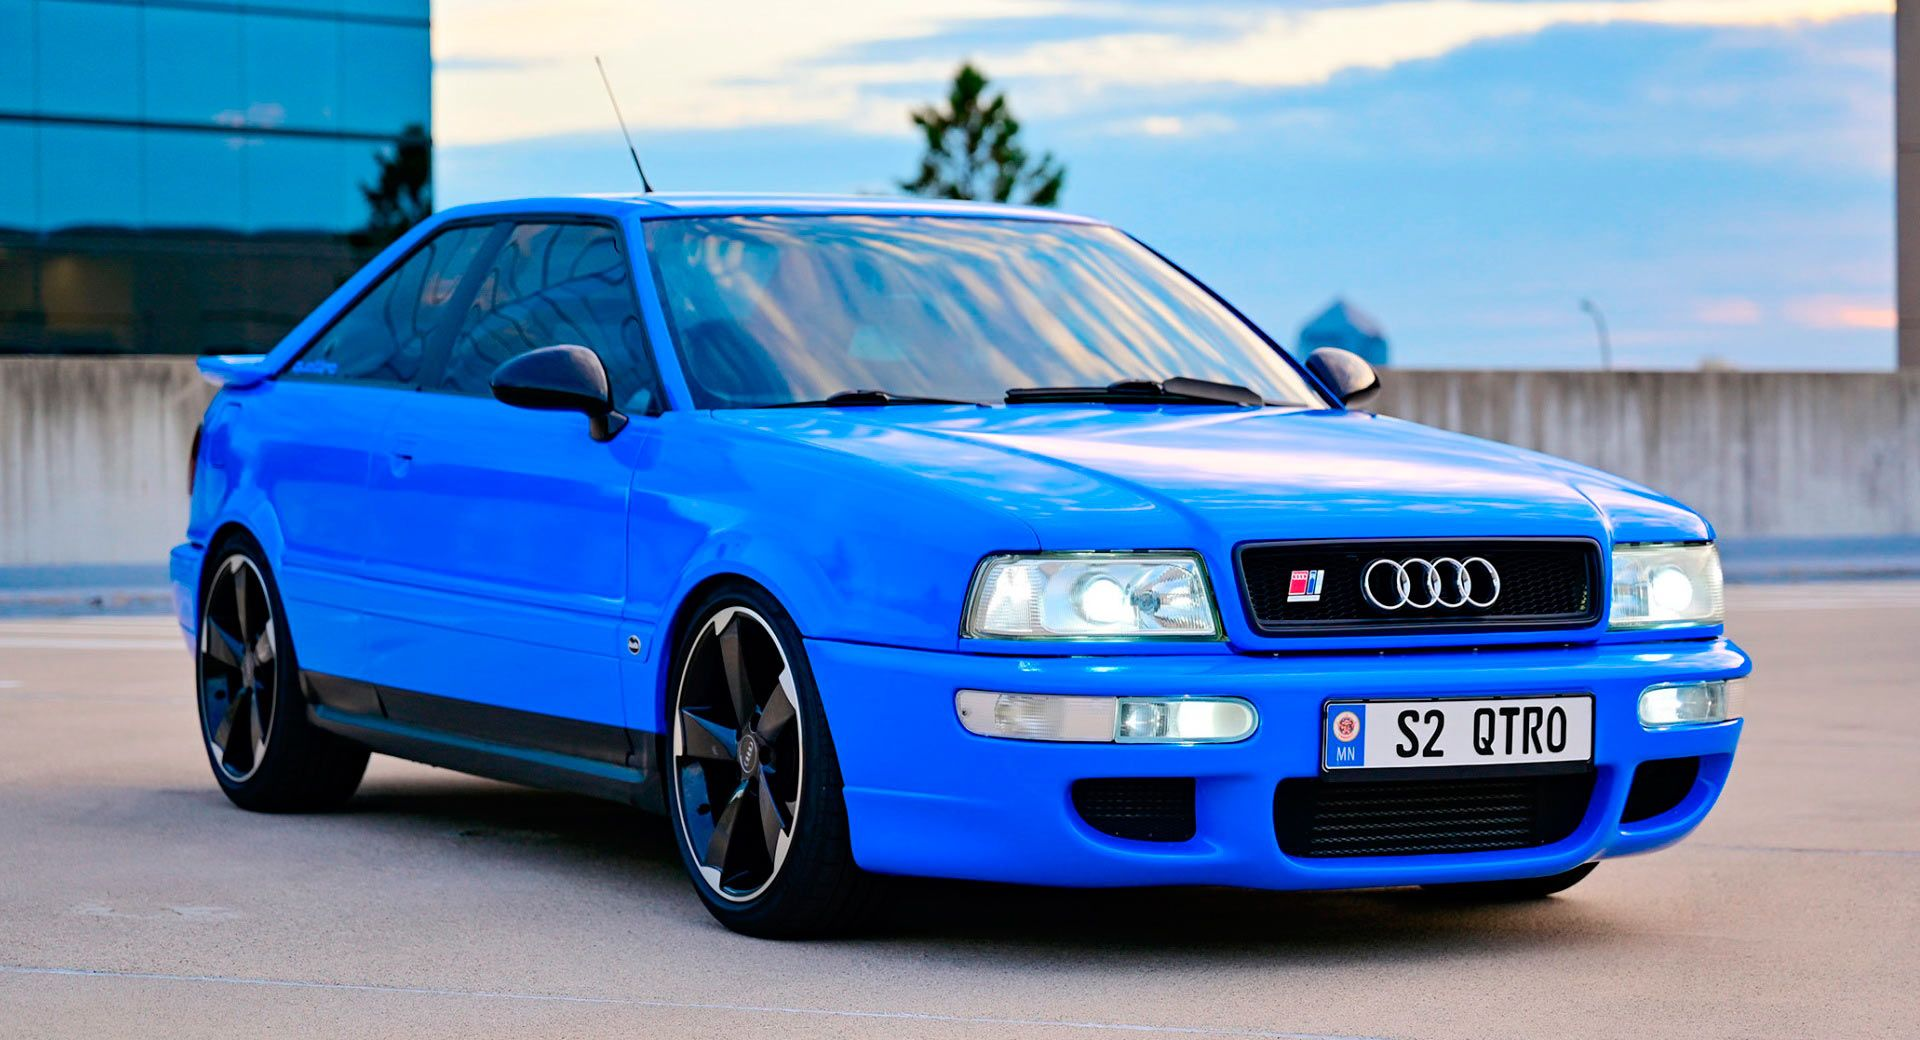 Modded 1990 Audi Coupe Quattro Takes On Rs2 Tribute Moniker Auction Audi Classics Galleries Usedcars Cars Carsofinstagram Carporn Audi Coupe Coupe Audi